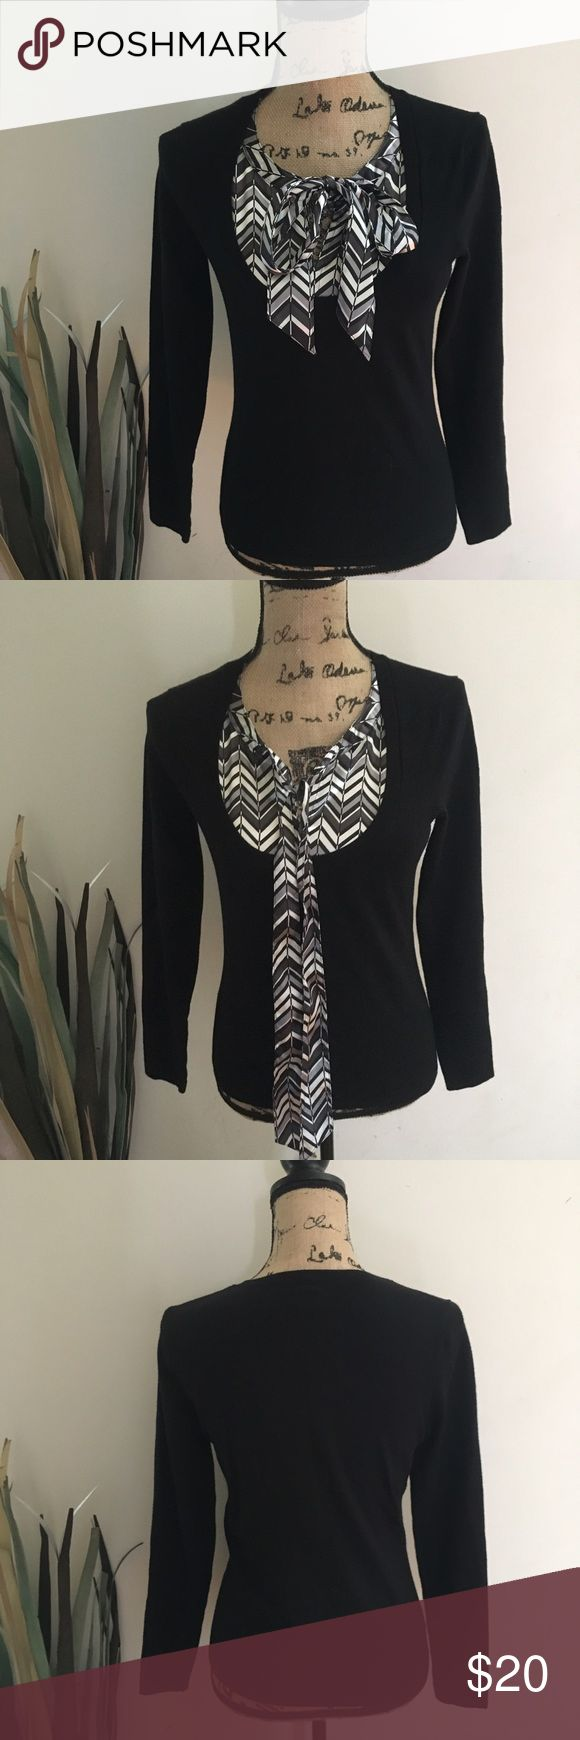 Ann Taylor black faux layered sweater Perfect for work! Black v neck sweater with faux layered silky top with tie neck. Sz small GUC with some minor pilling underarms. See last pic. No snags or holes. Nonsmoking home. Ann Taylor Tops